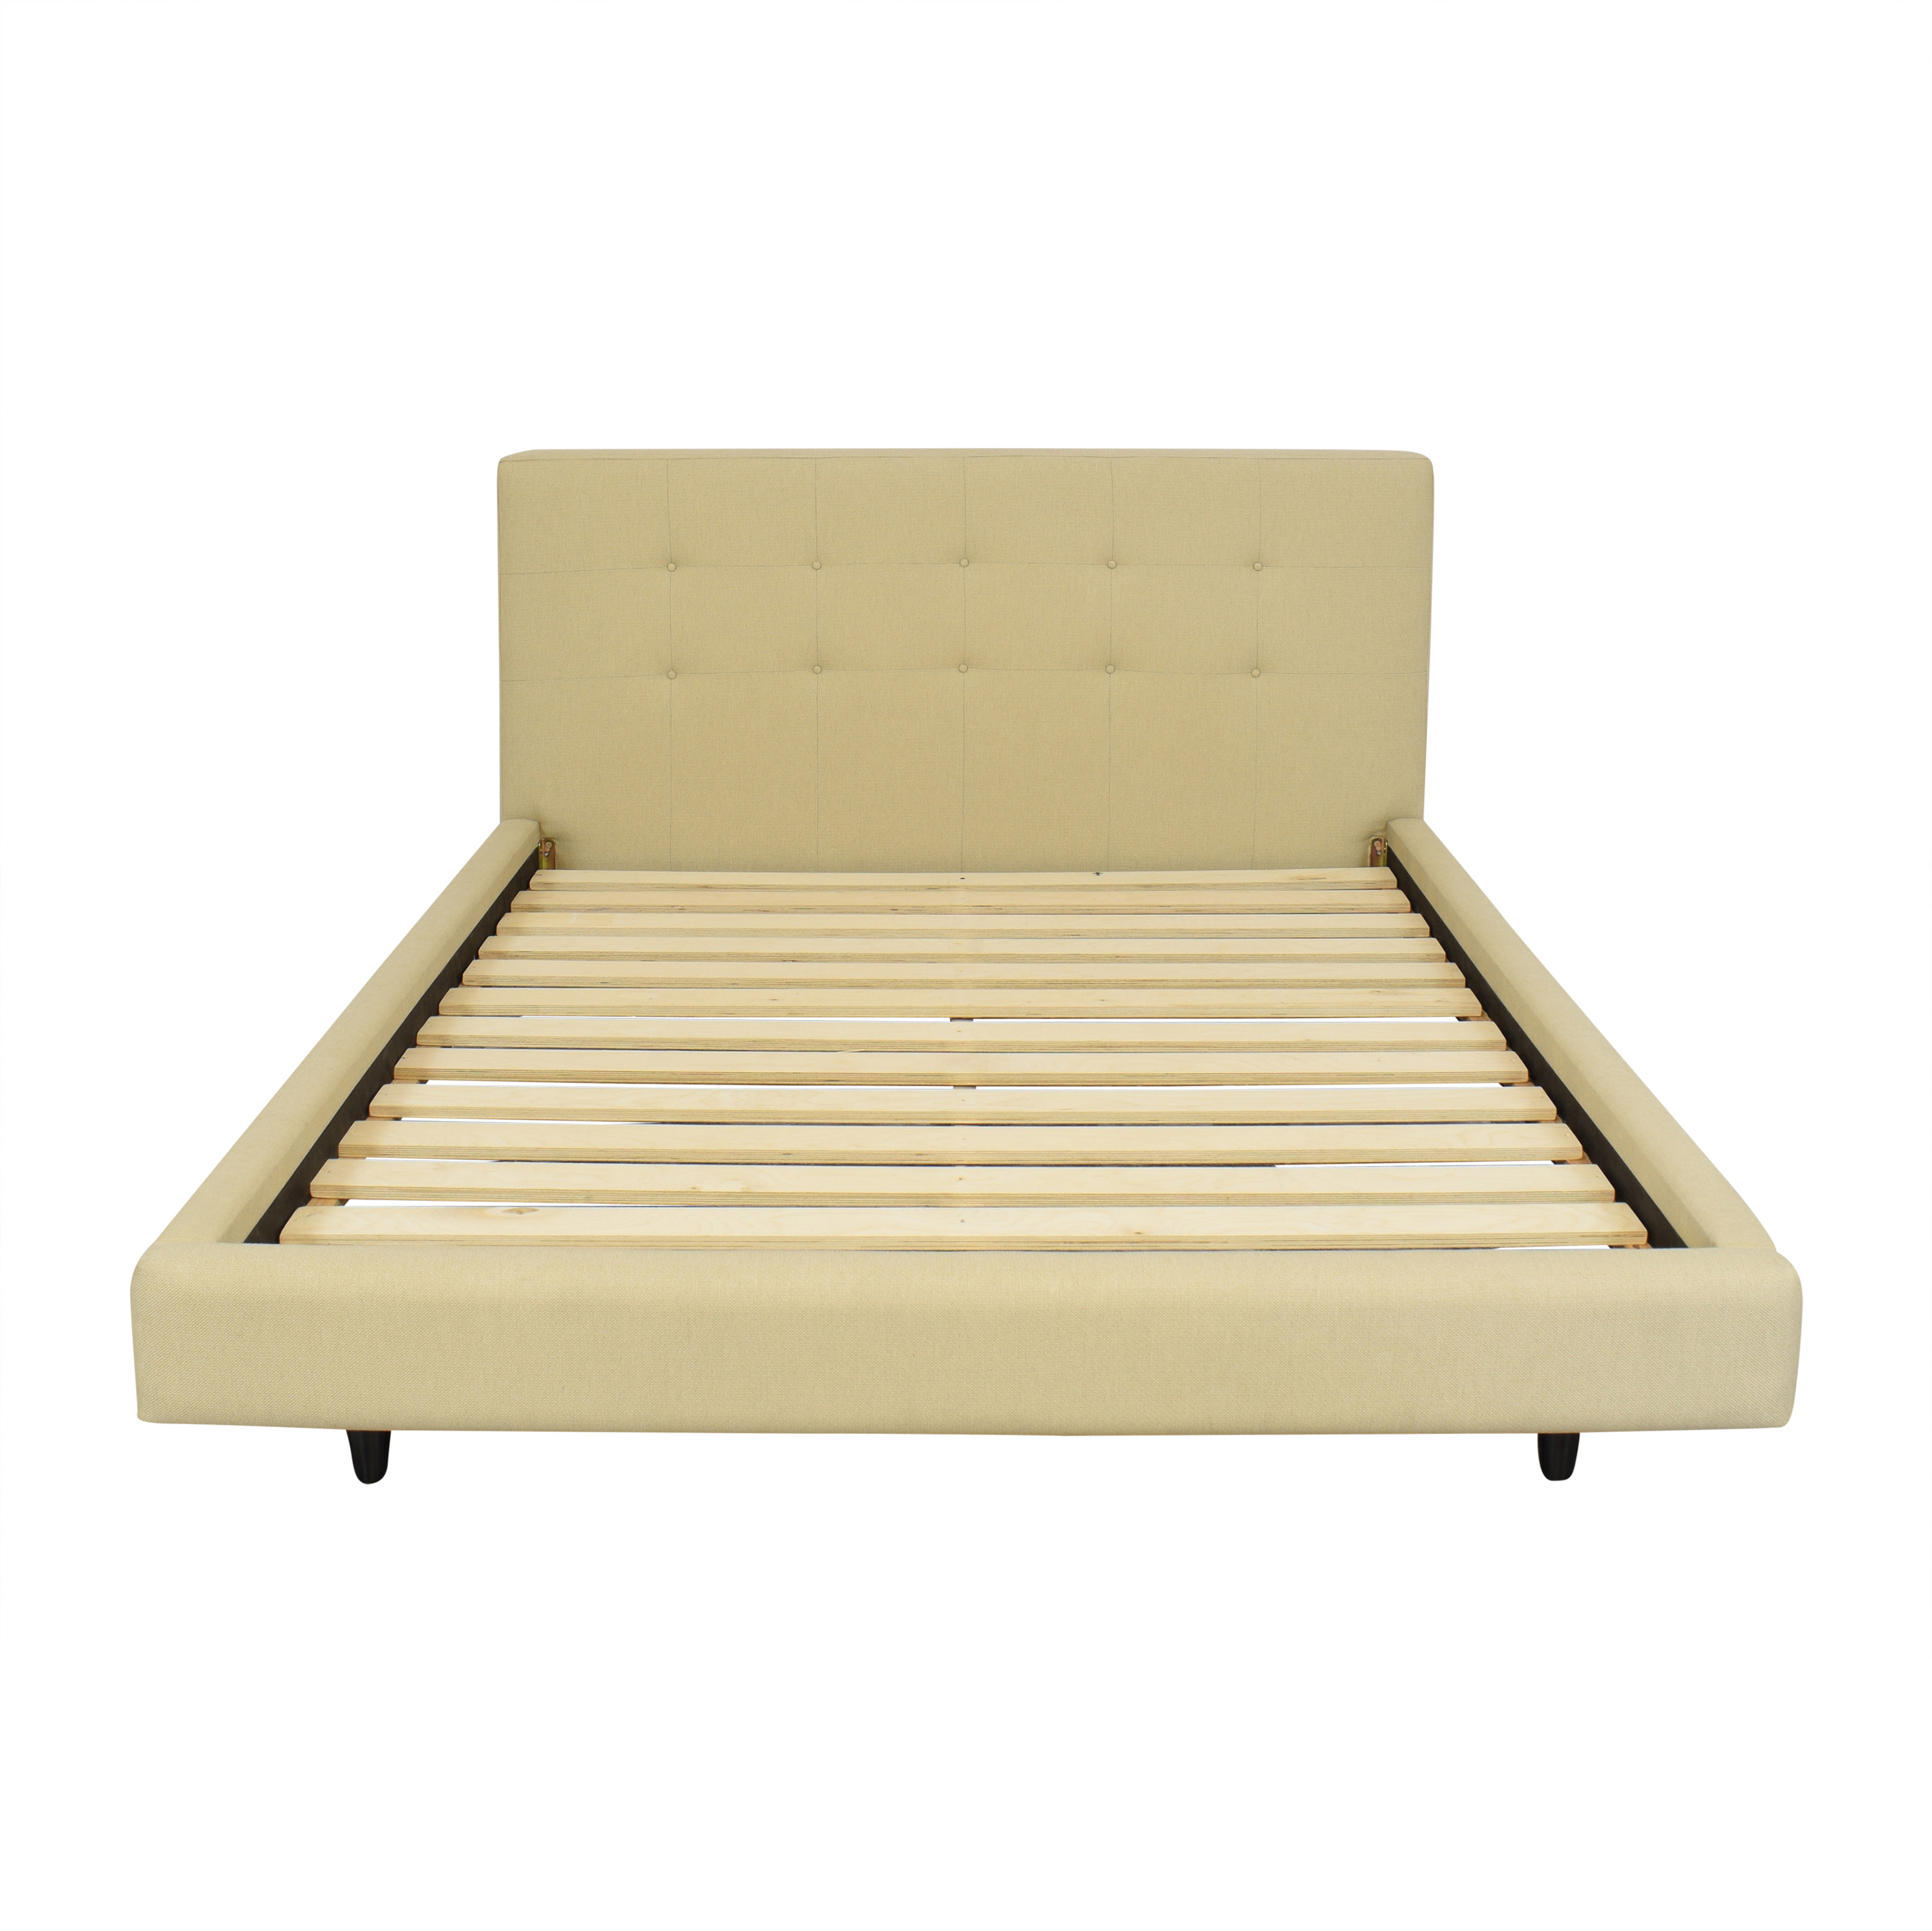 Crate & Barrel Crate & Barrel Tate Upholstered Queen Bed price